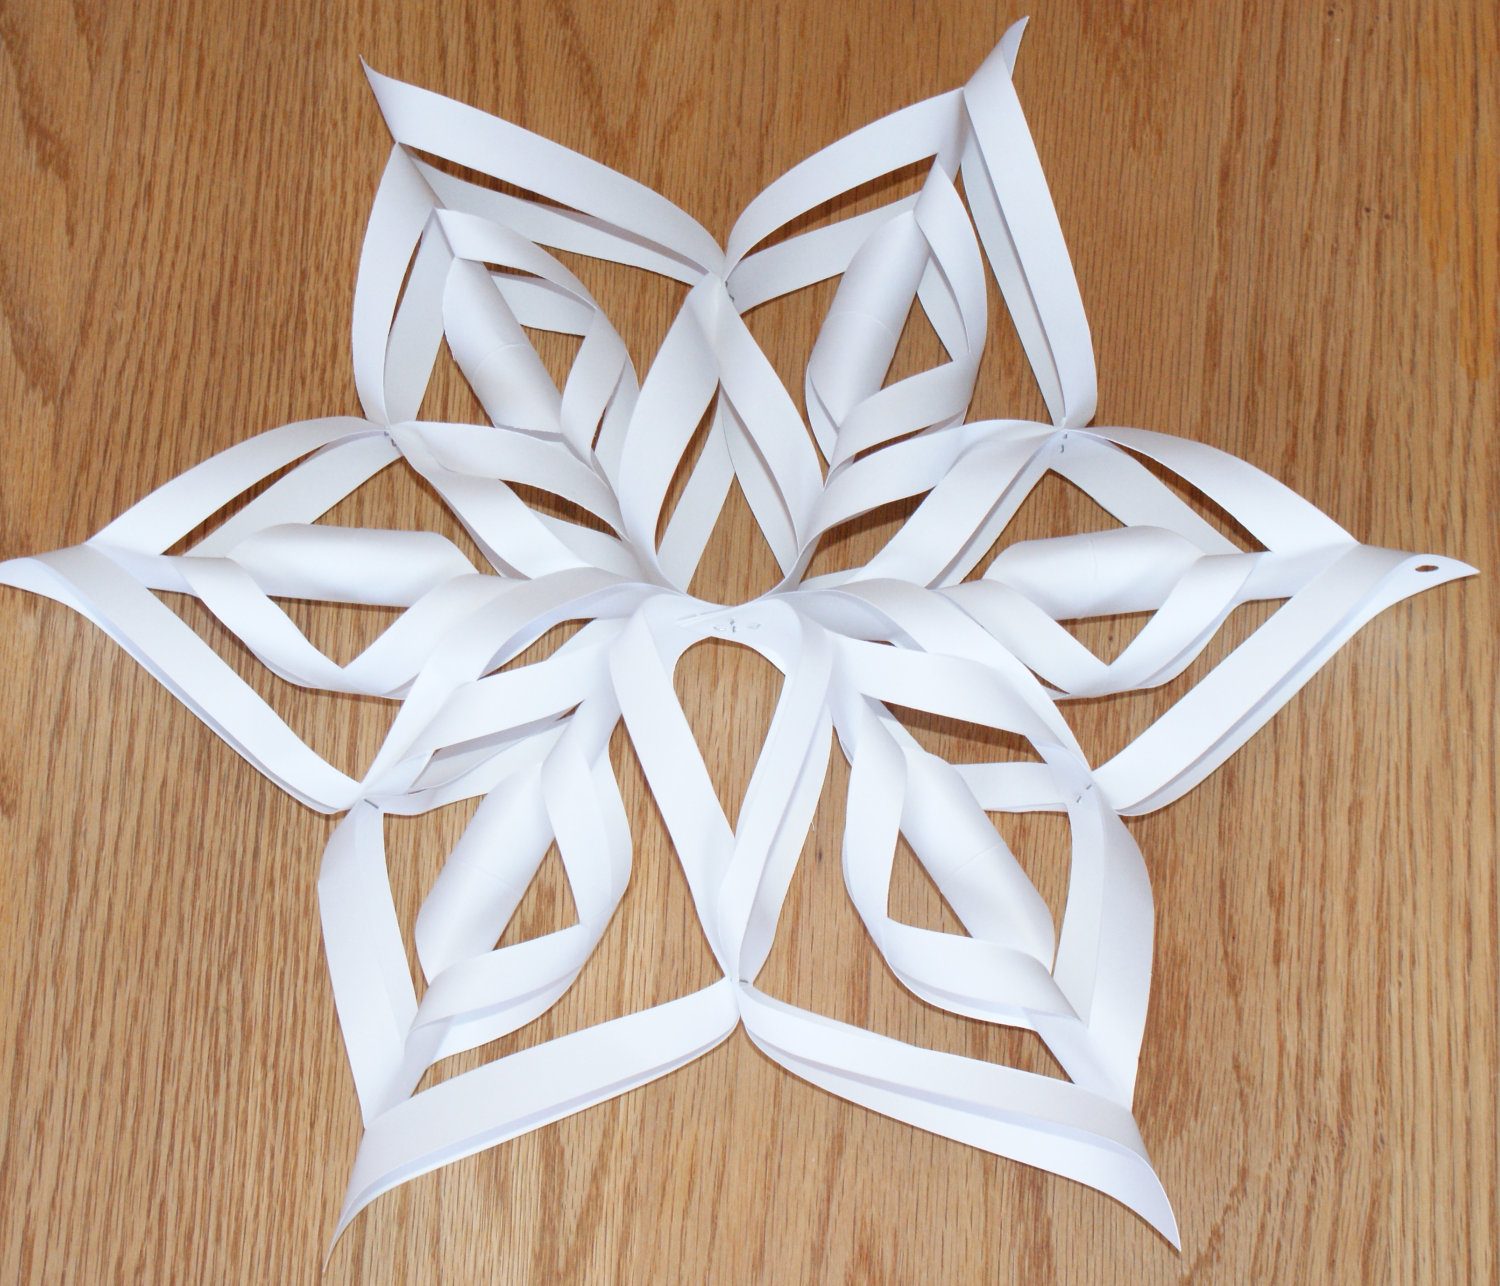 5 Images of 3D Printable Snowflake Template